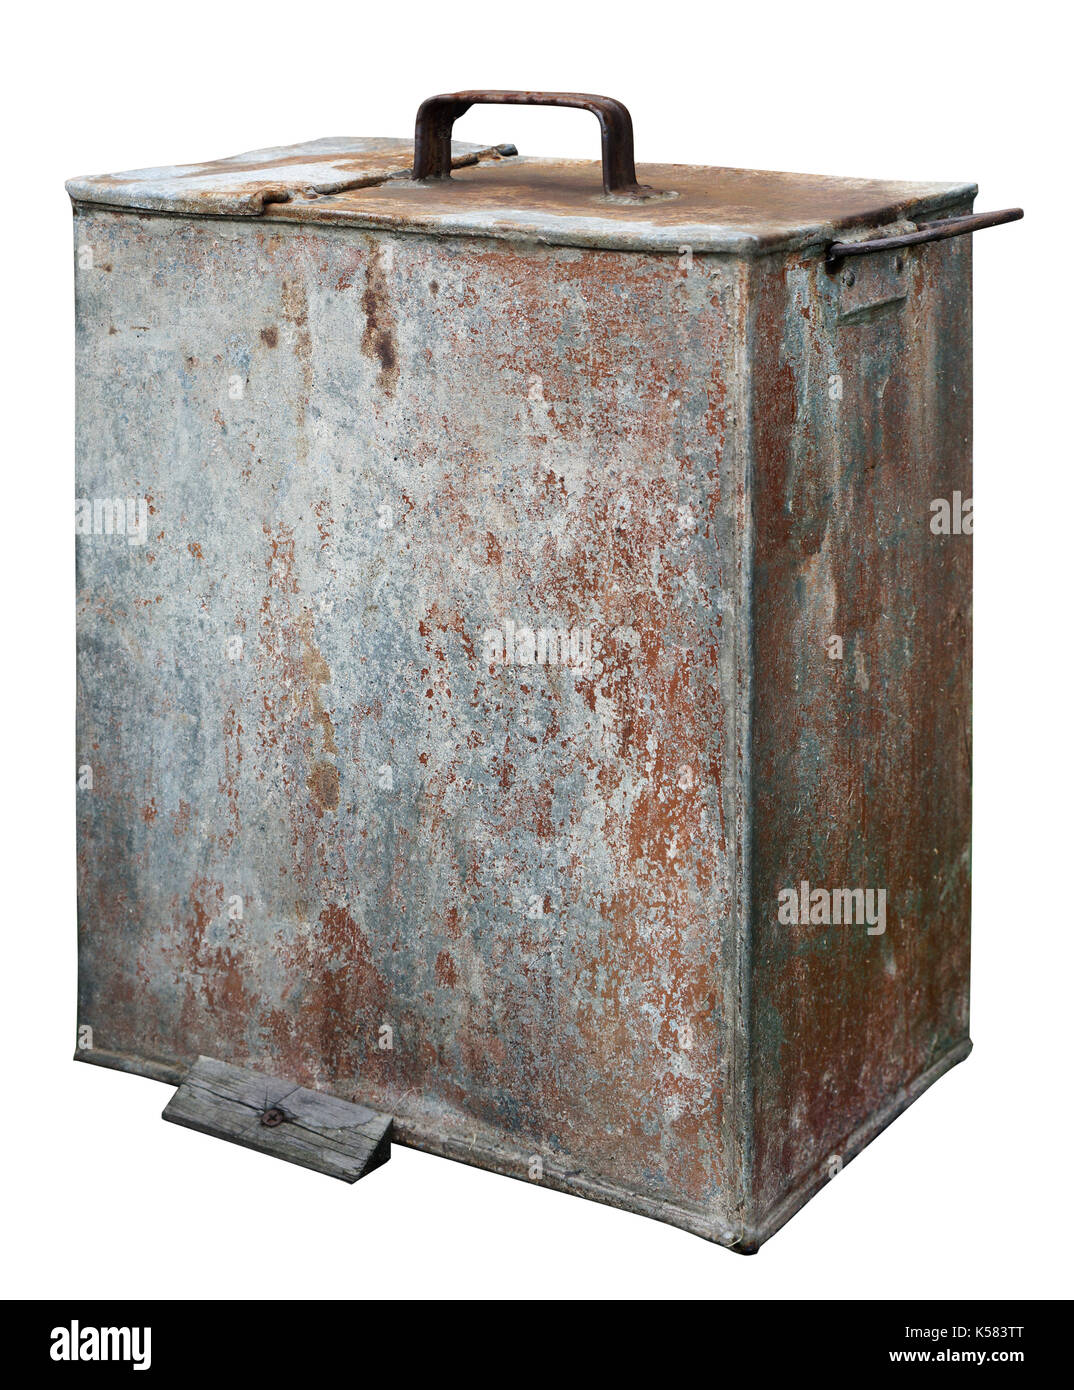 Tin galvanized rusted canister for storage of engine oil. Isolated on white vinatge industrial object - Stock Image